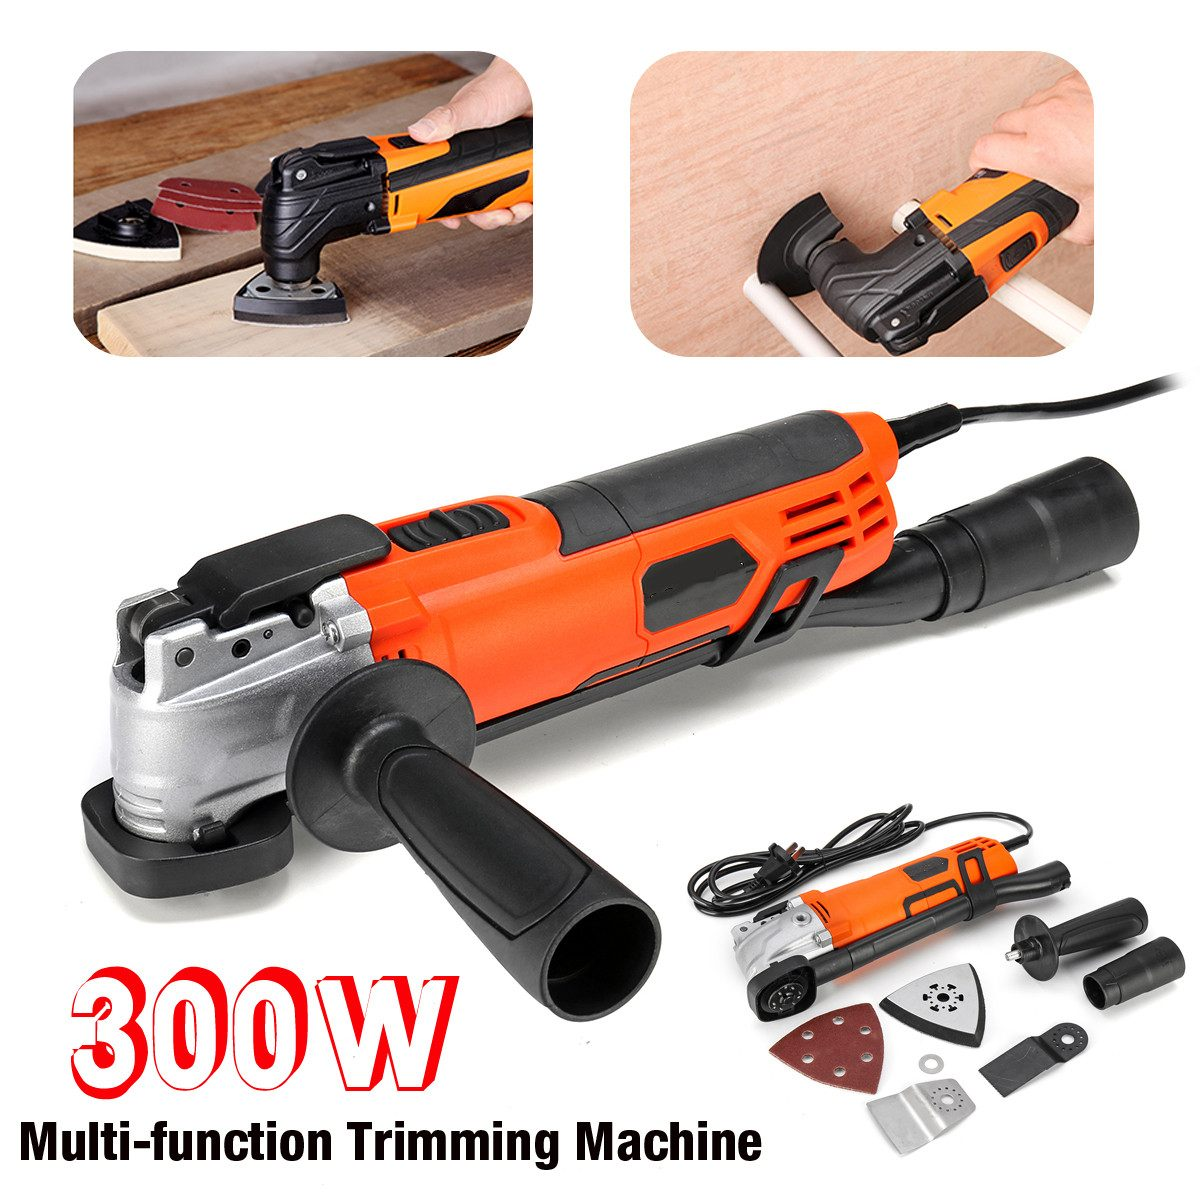 Variable 6 Speed 300W Electric Multifunction Oscillating Tool Kit Multi-Tool Power Tool Electric Grinder Trimmer Saw AccessoriesVariable 6 Speed 300W Electric Multifunction Oscillating Tool Kit Multi-Tool Power Tool Electric Grinder Trimmer Saw Accessories